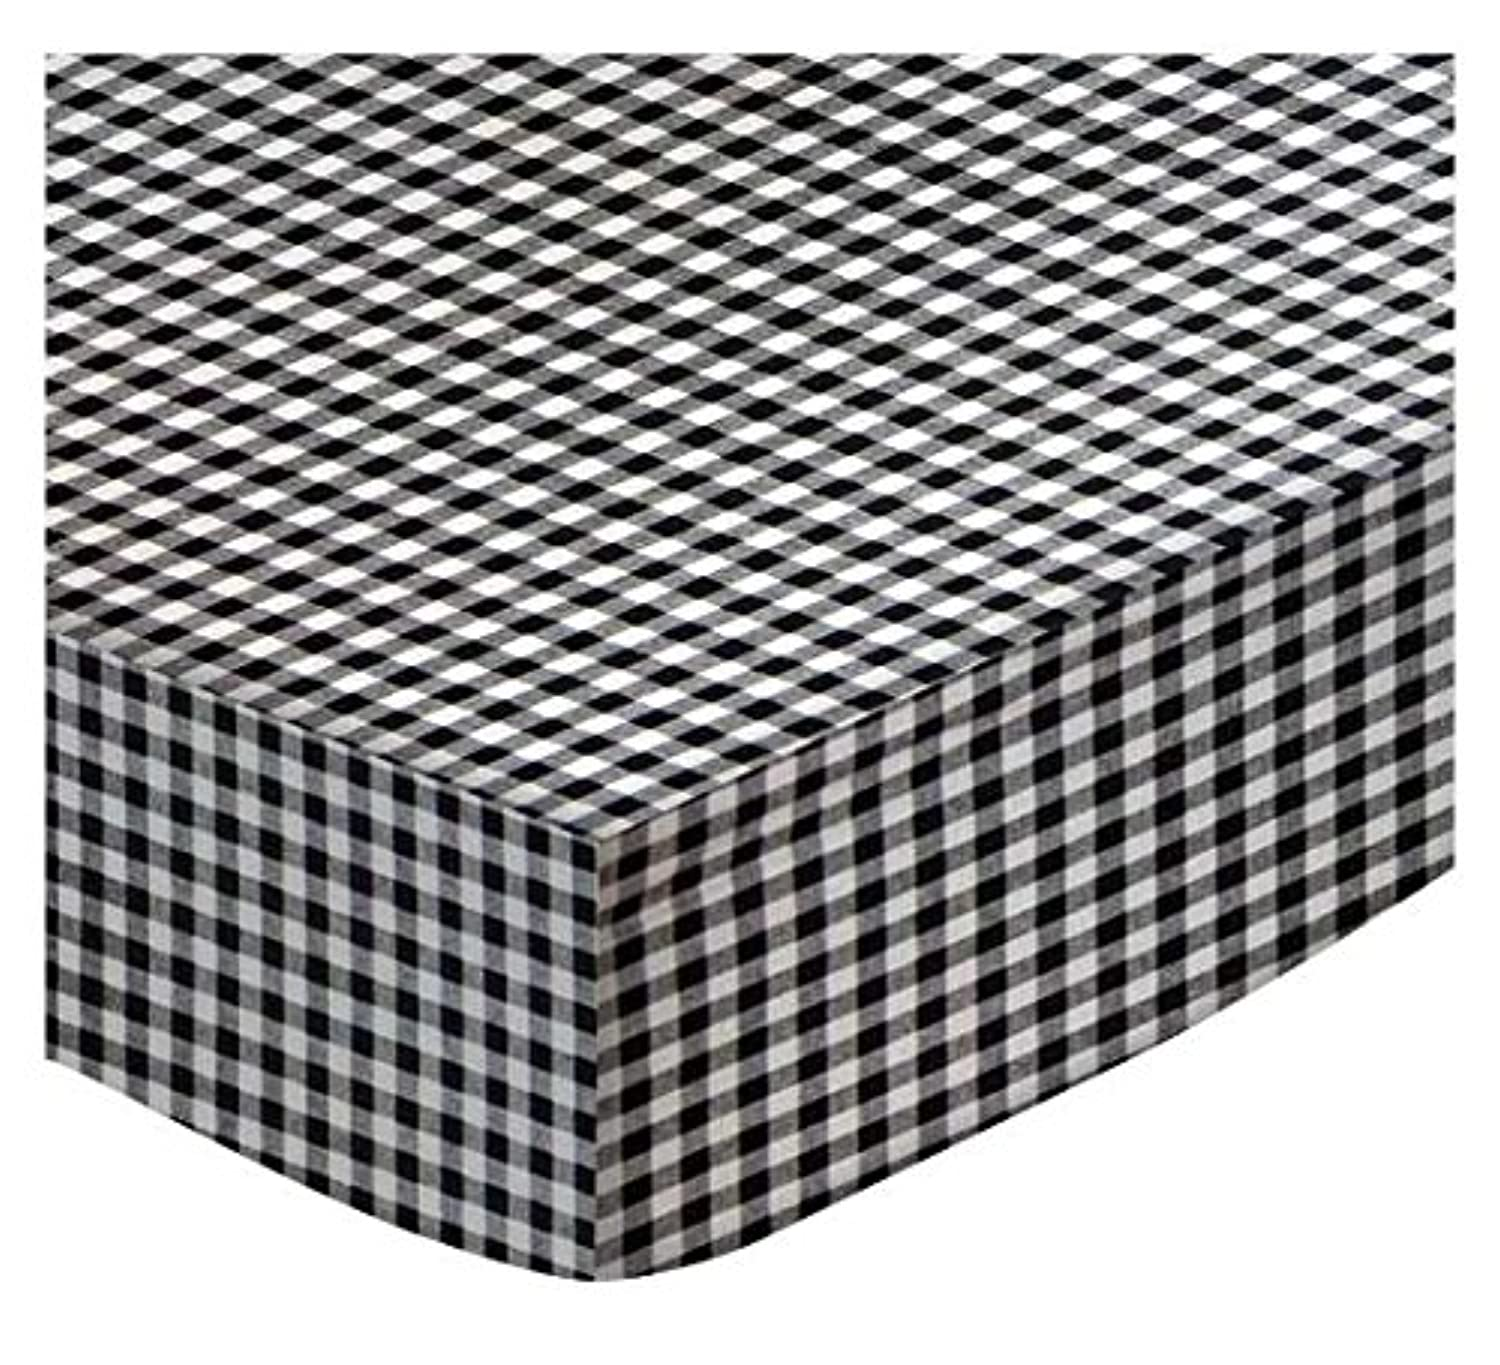 SheetWorld Fitted Cradle Sheet - Black Gingham Check - Made In USA by sheetworld